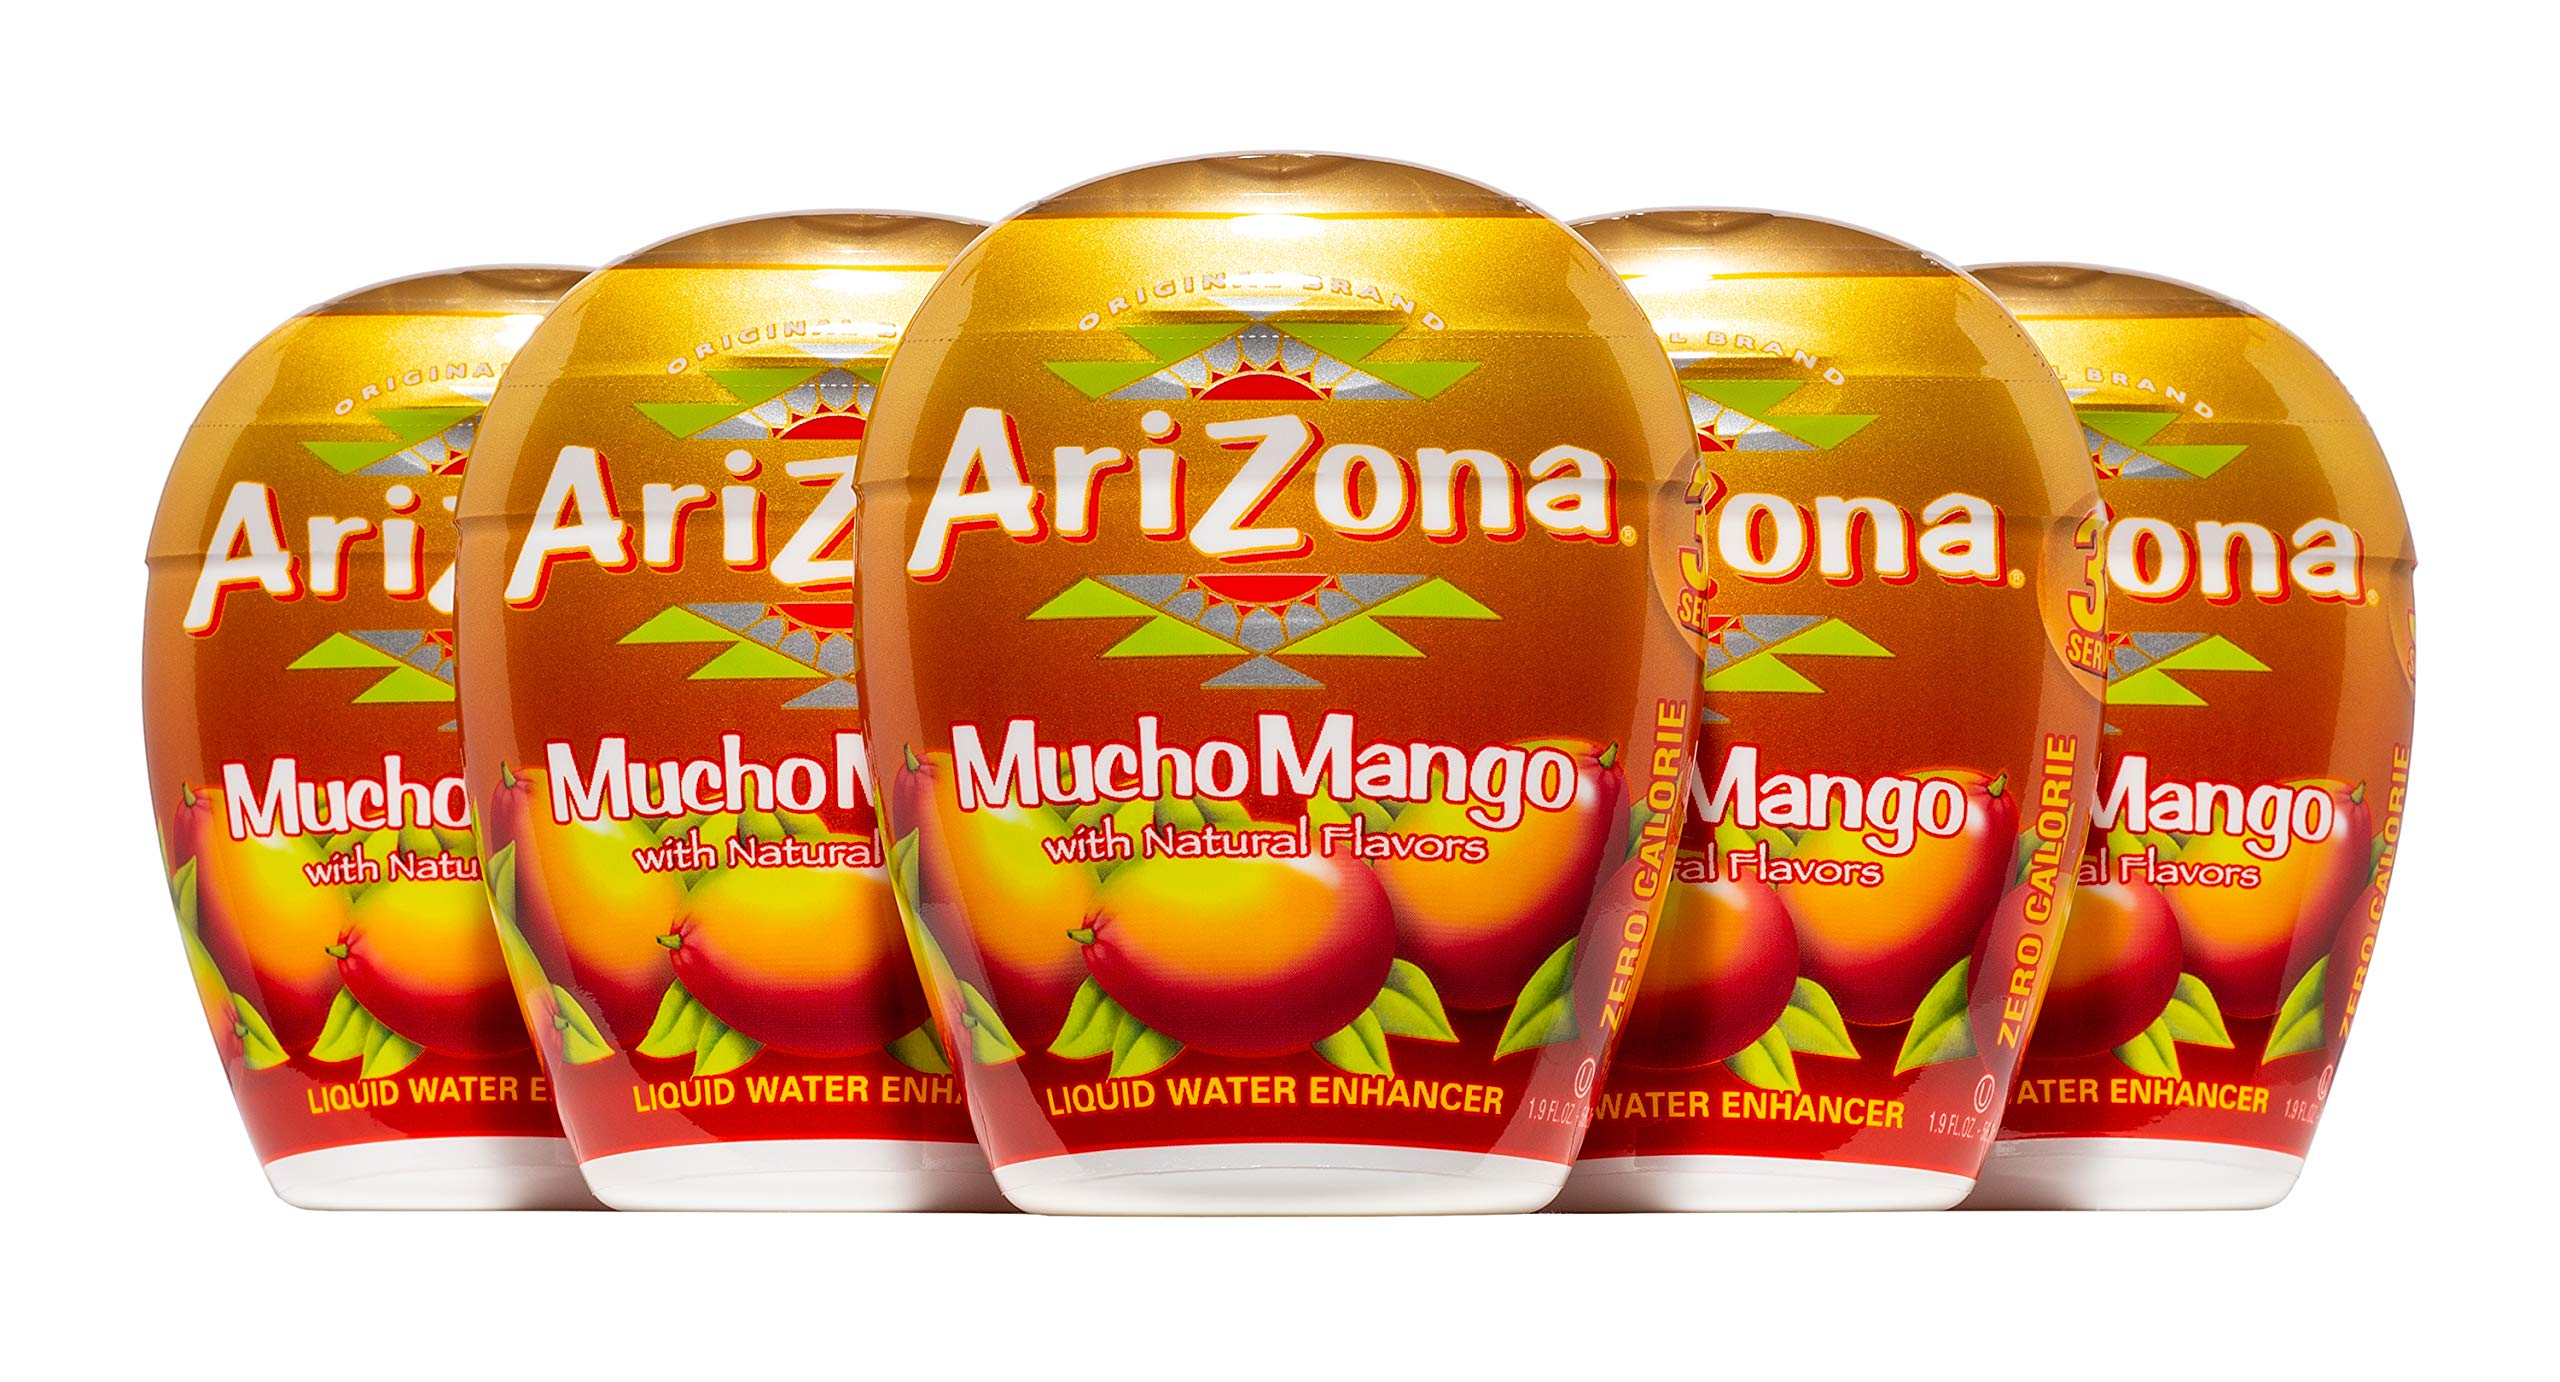 AriZona Mucho Mango Liquid Water Enhancer LWE (Pack of 5), Low Calorie Single Serving, Liquid Drink Mix, Just Add Water for Deliciously Refreshing Fruity Zero Calorie Beverage by Arizona